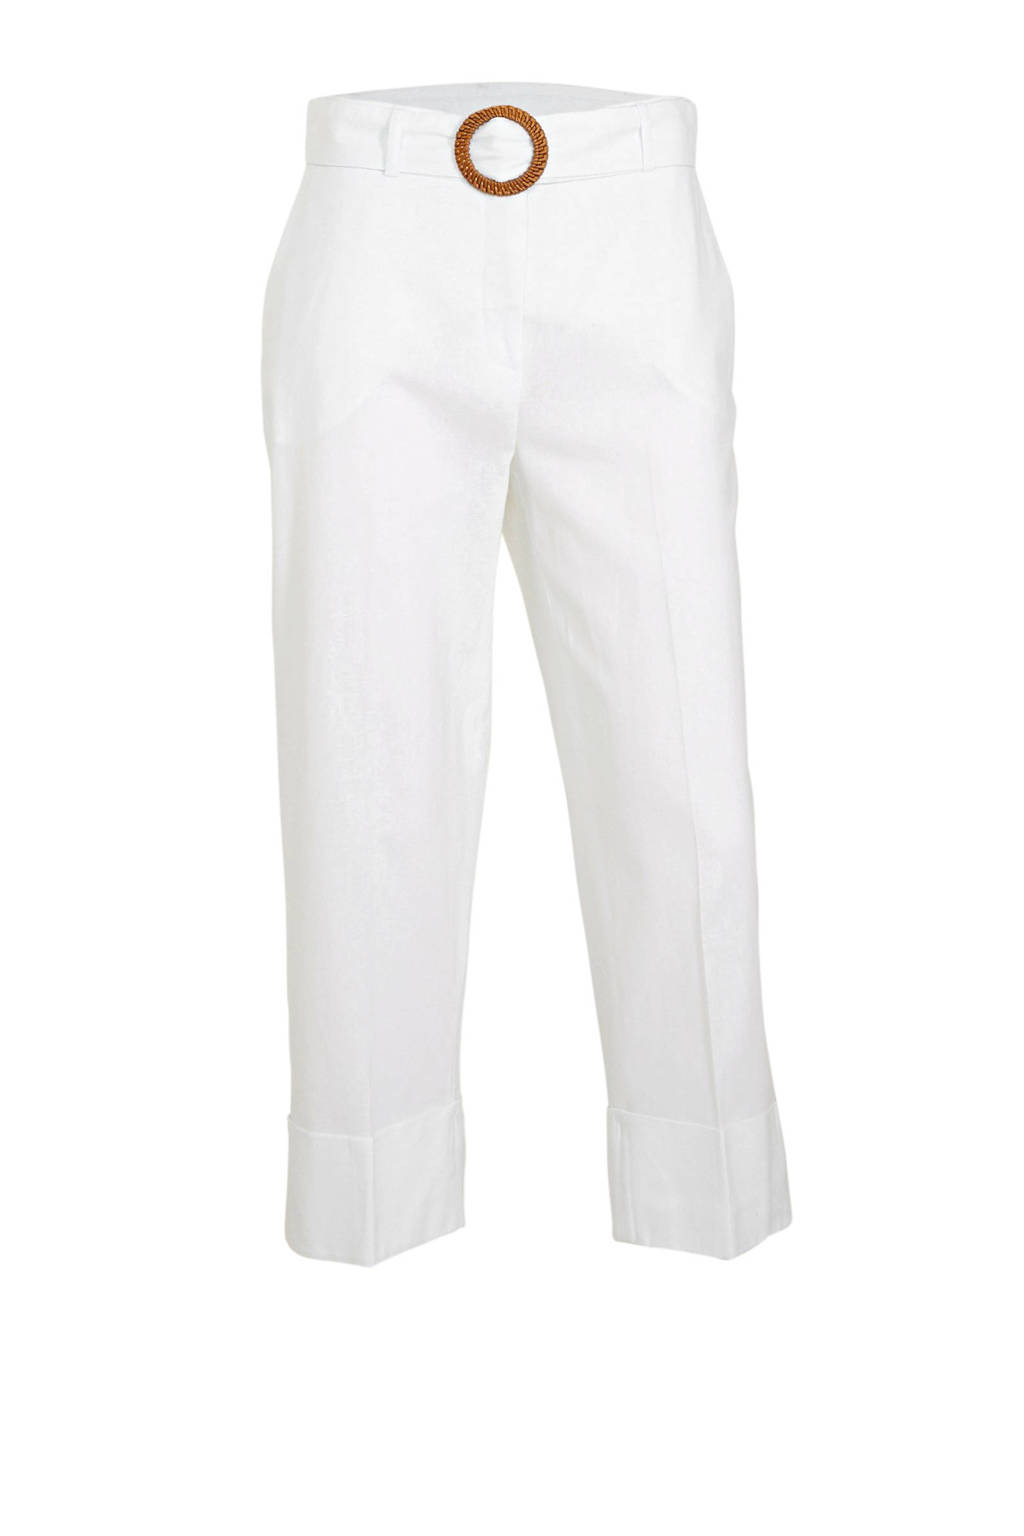 C&A Yessica cropped straight fit broek met linnen wit, Wit